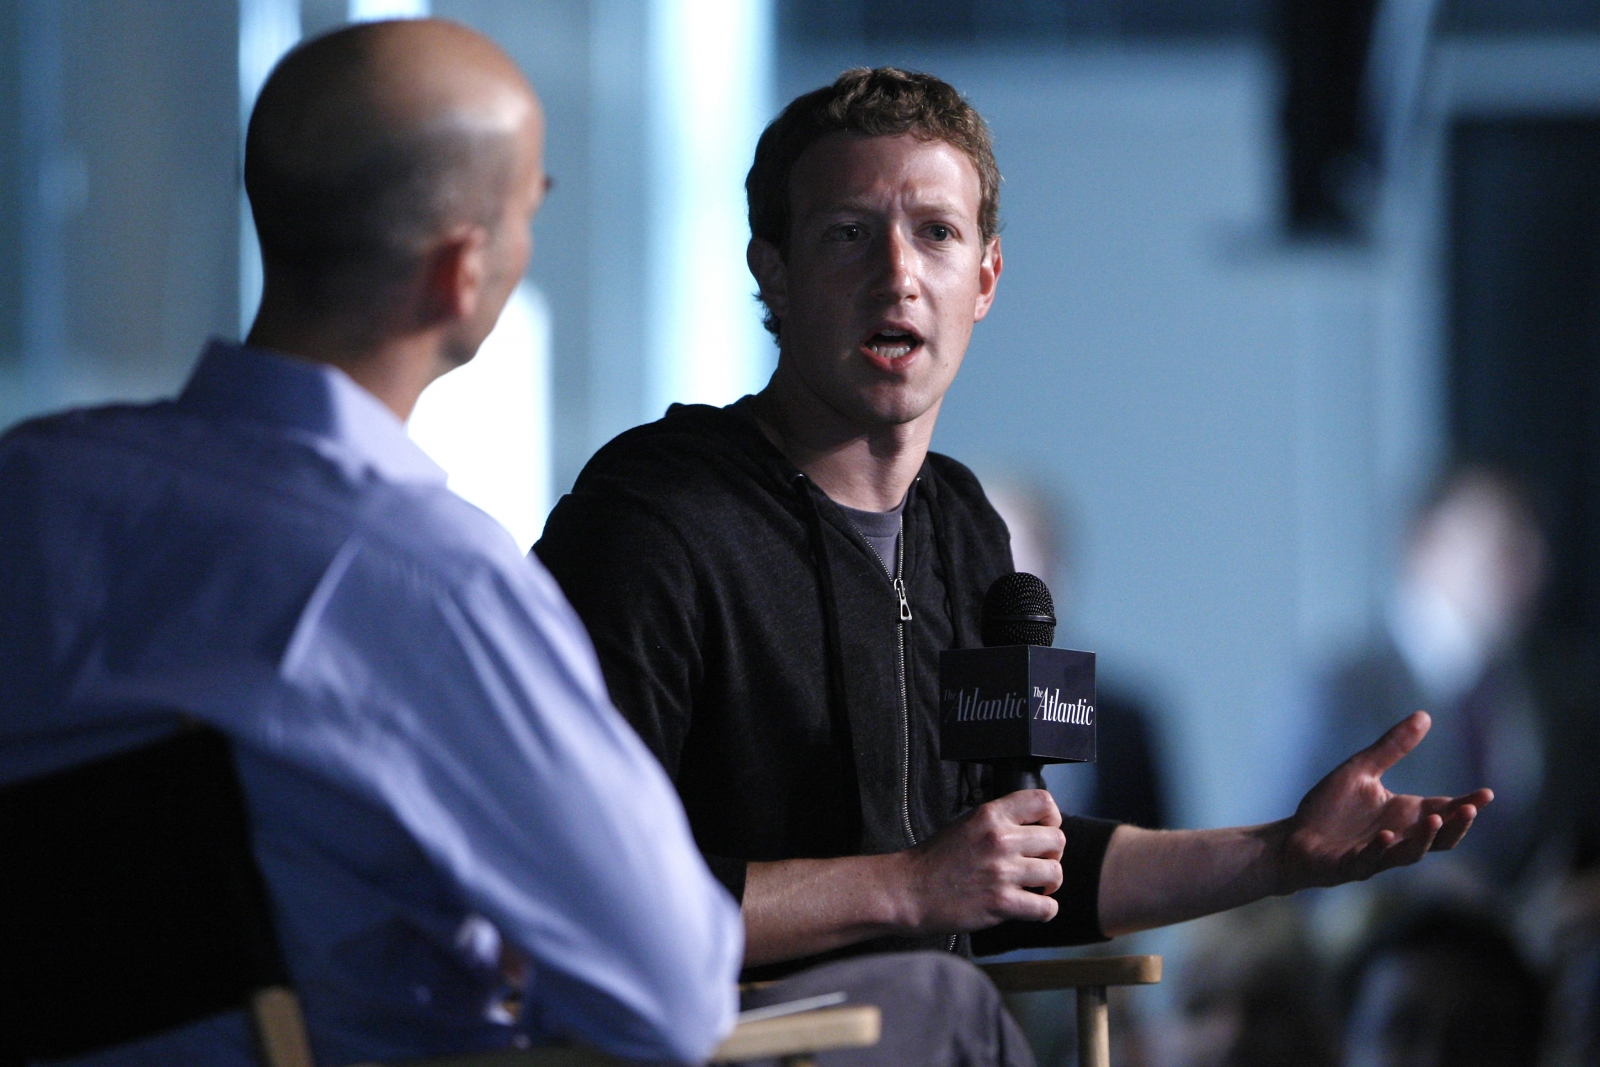 Facebook founder Mark Zuckerberg studies role of church in community